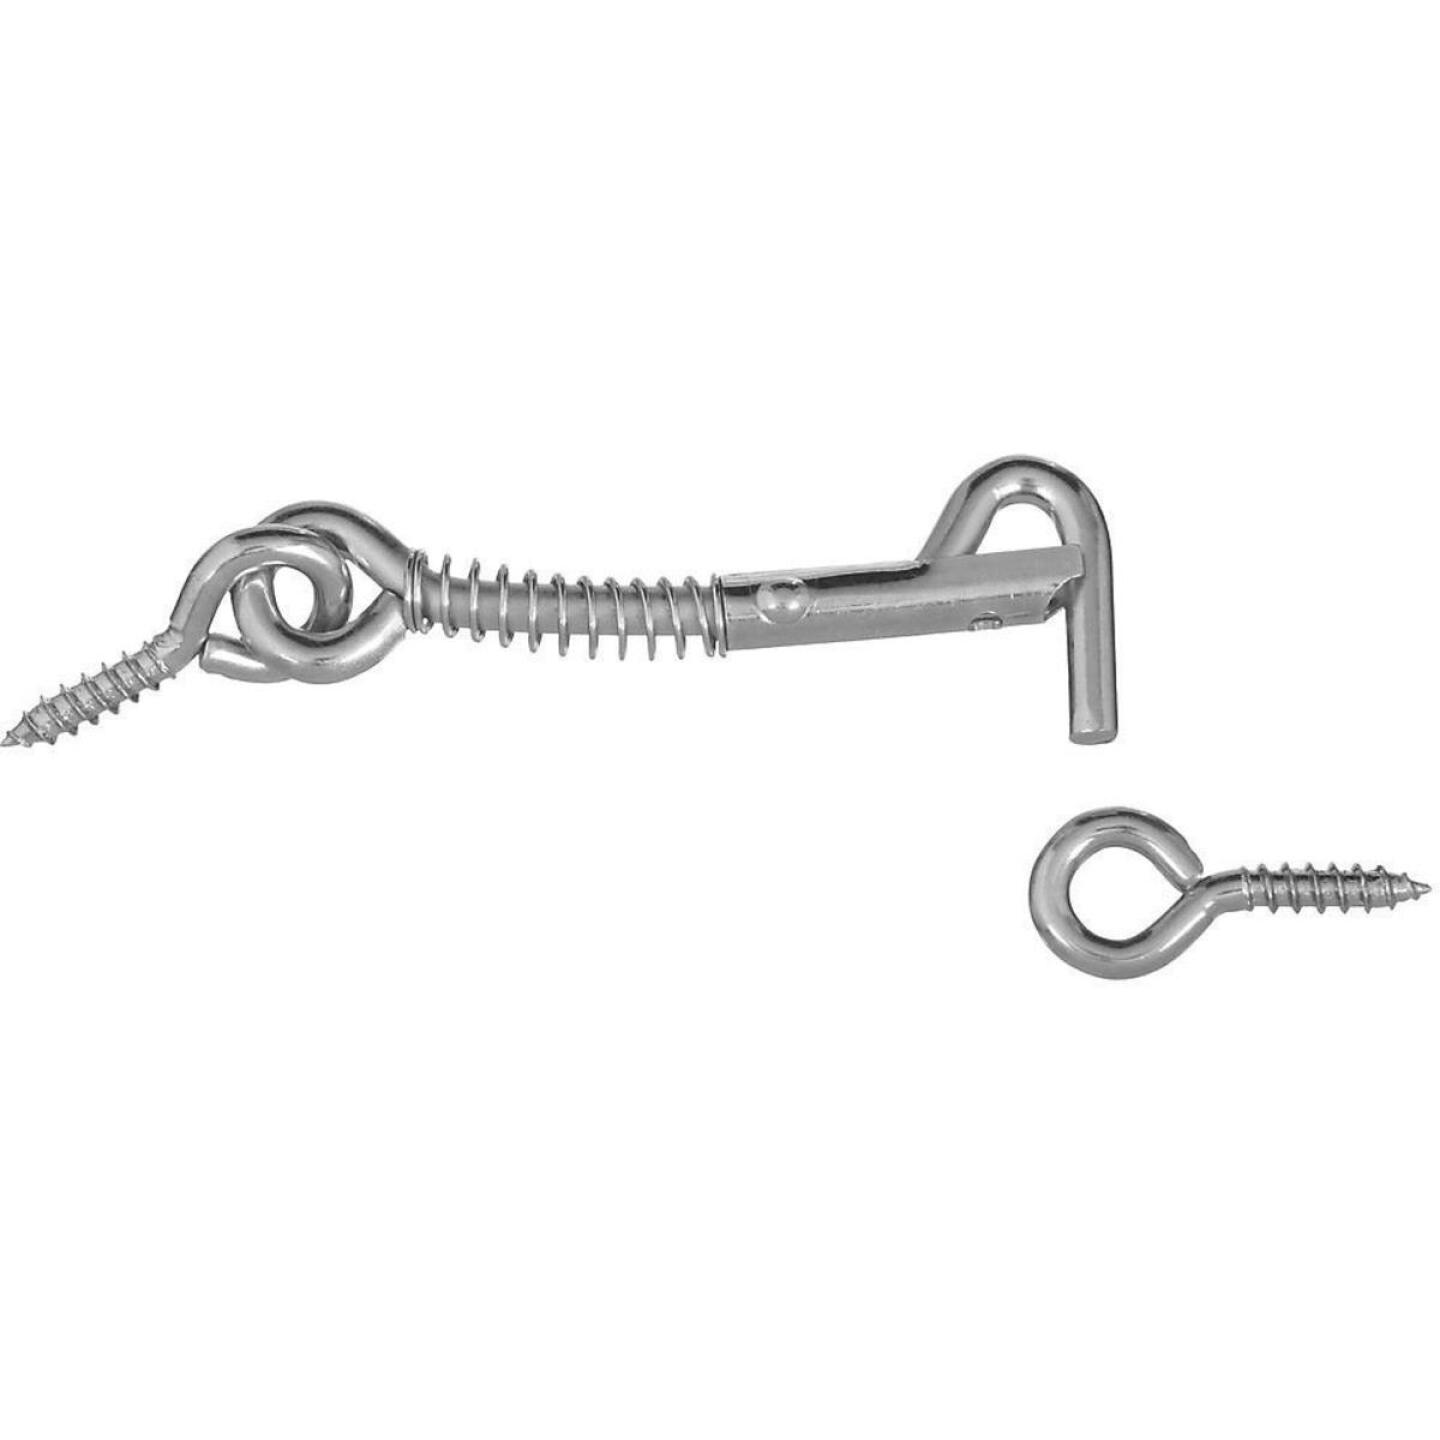 National Steel 2-1/2 In. Safety Gate Hook & Eye Bolt Image 1